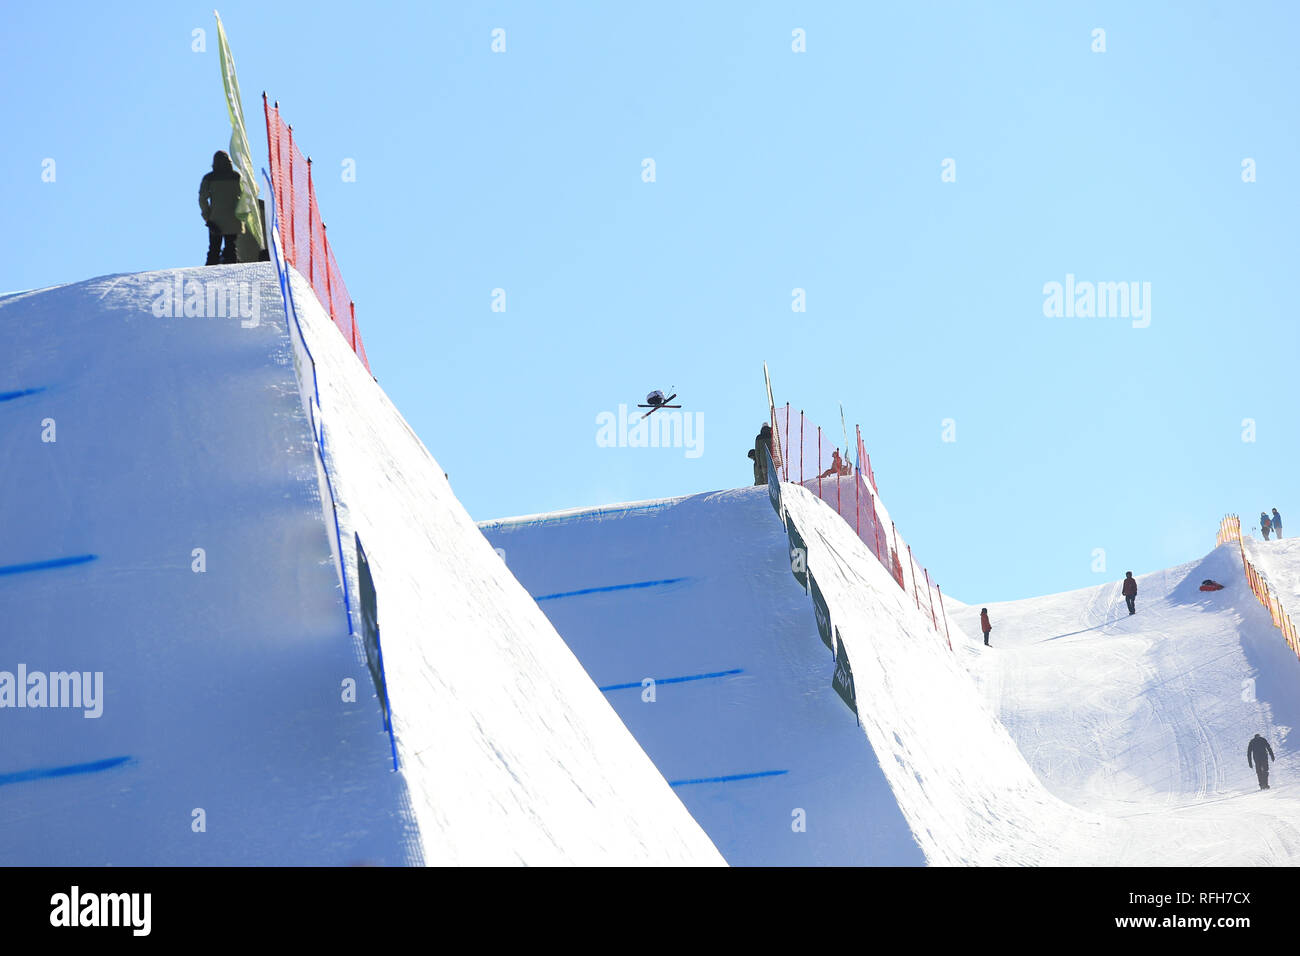 FIS Free Ski World Cup 2019 Slopestyle Event in Seiser Alm